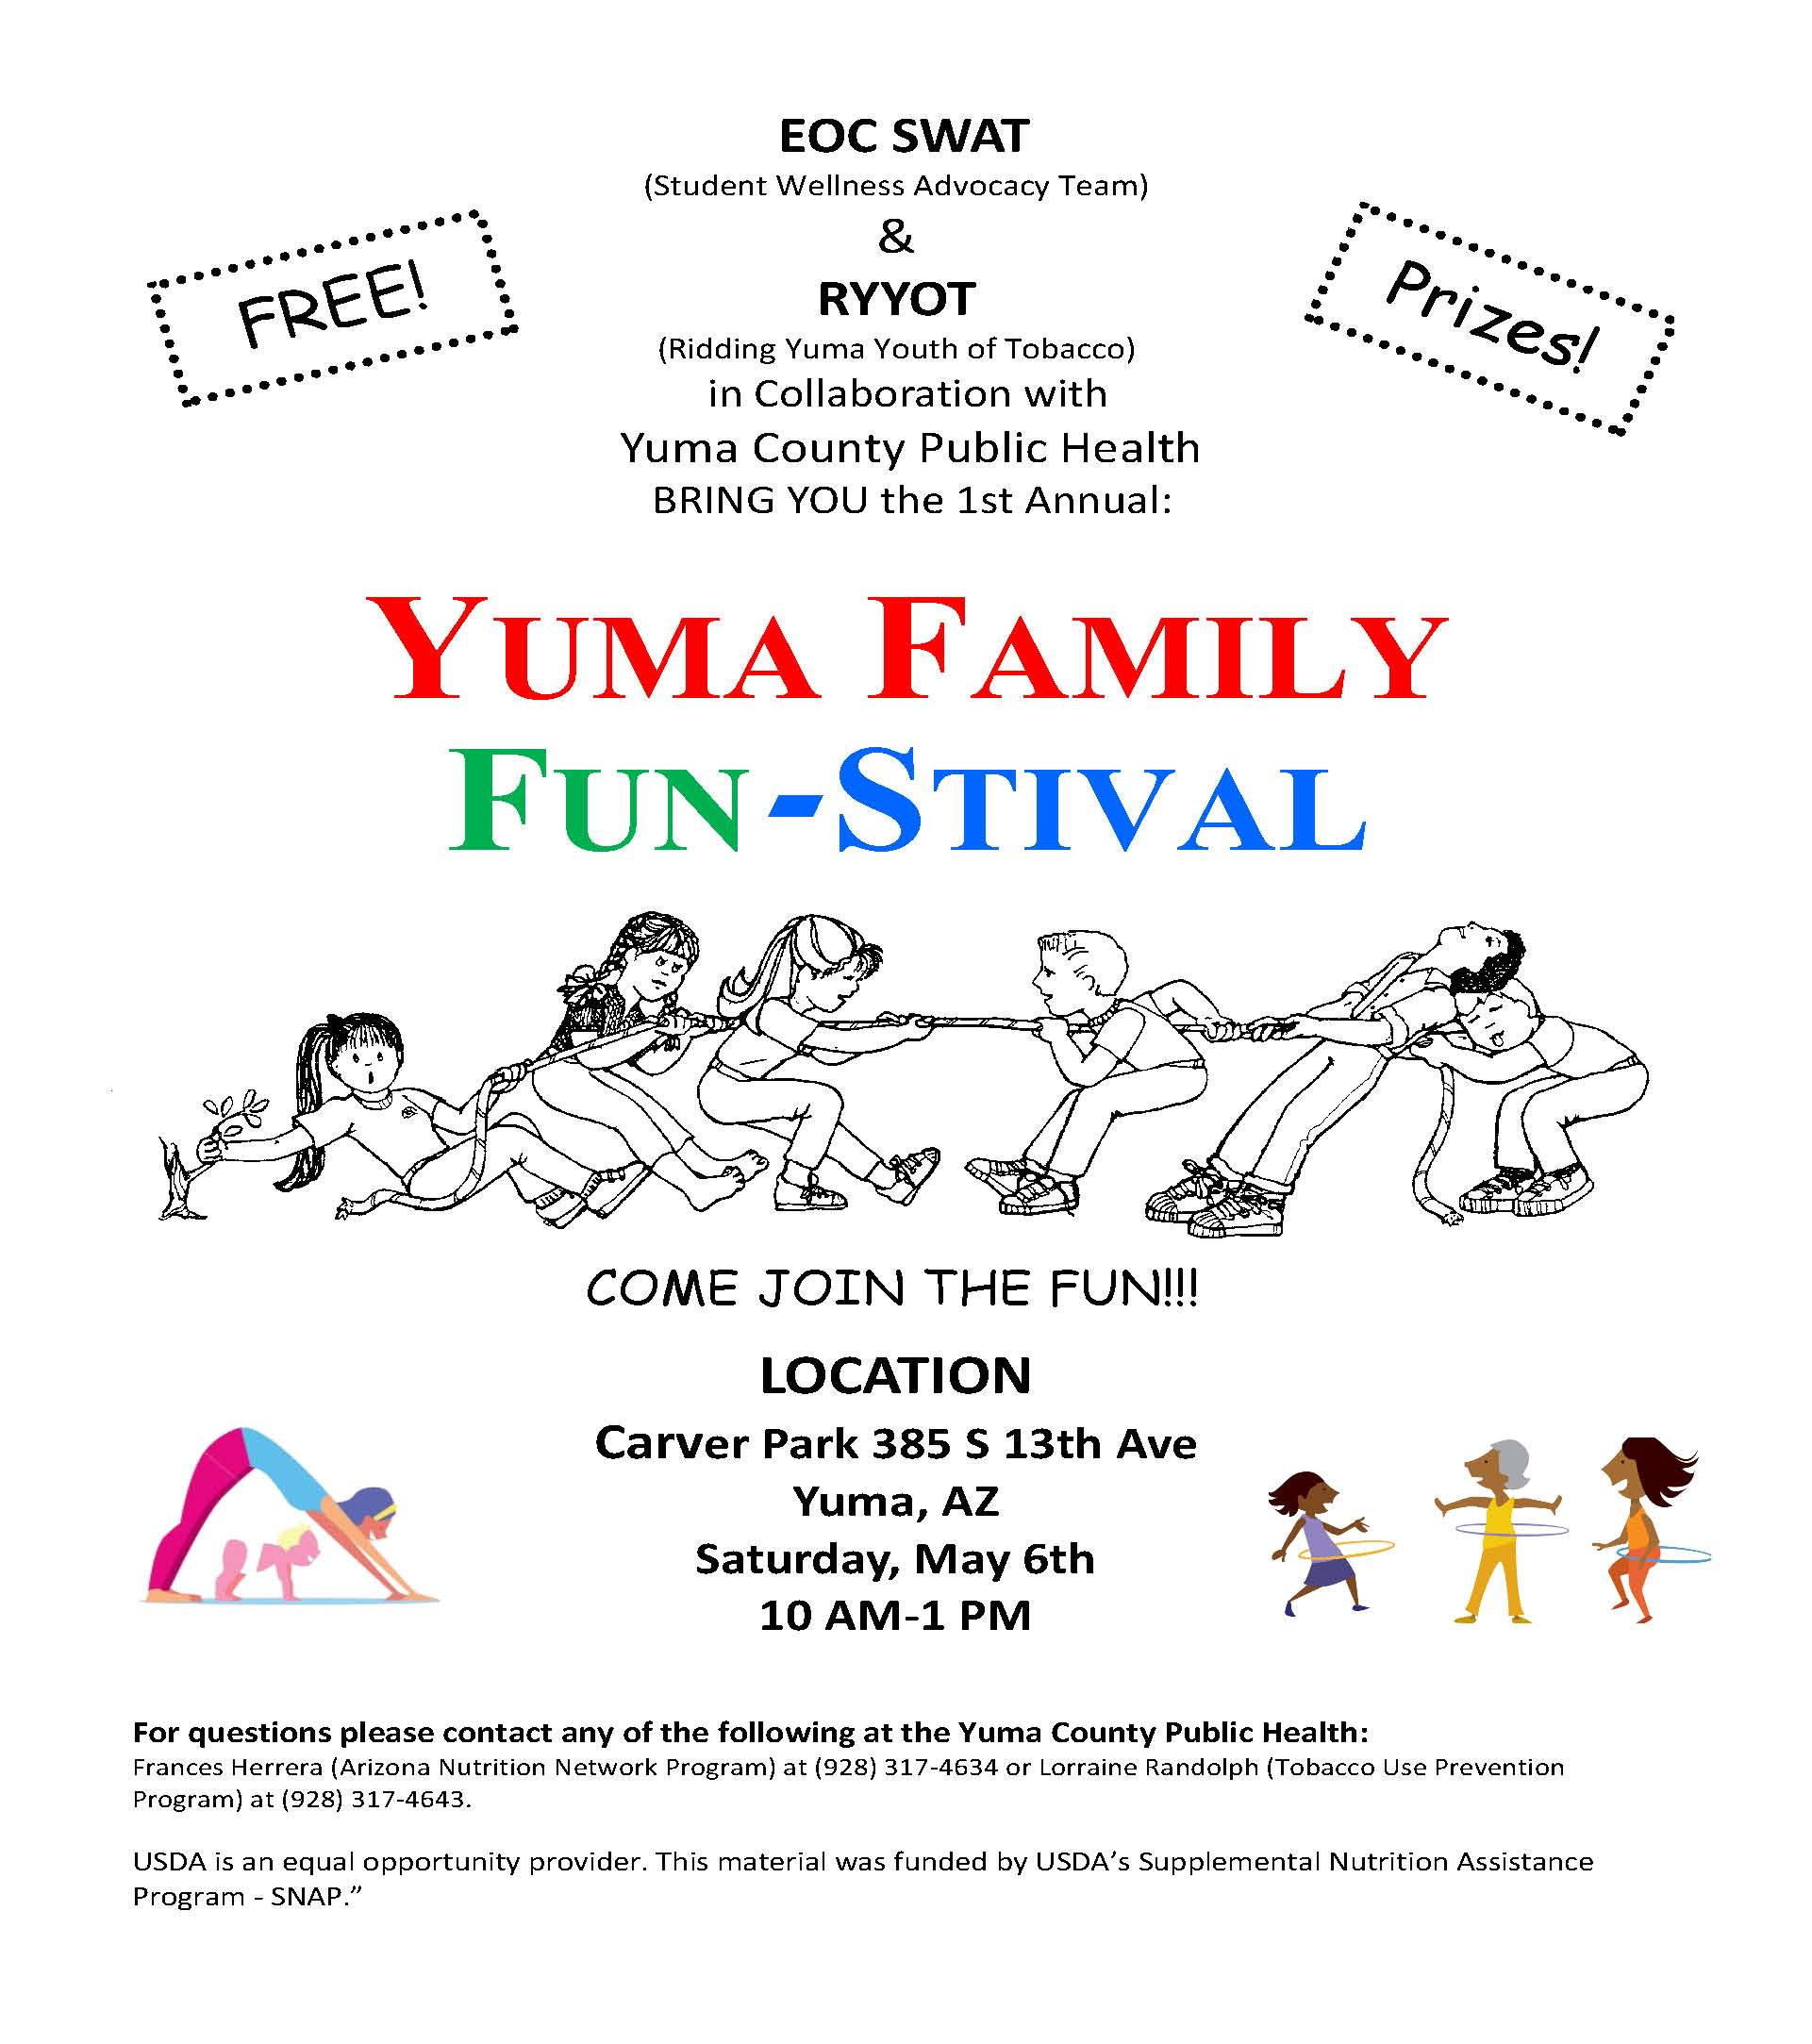 Yuma Family Fun-Stival